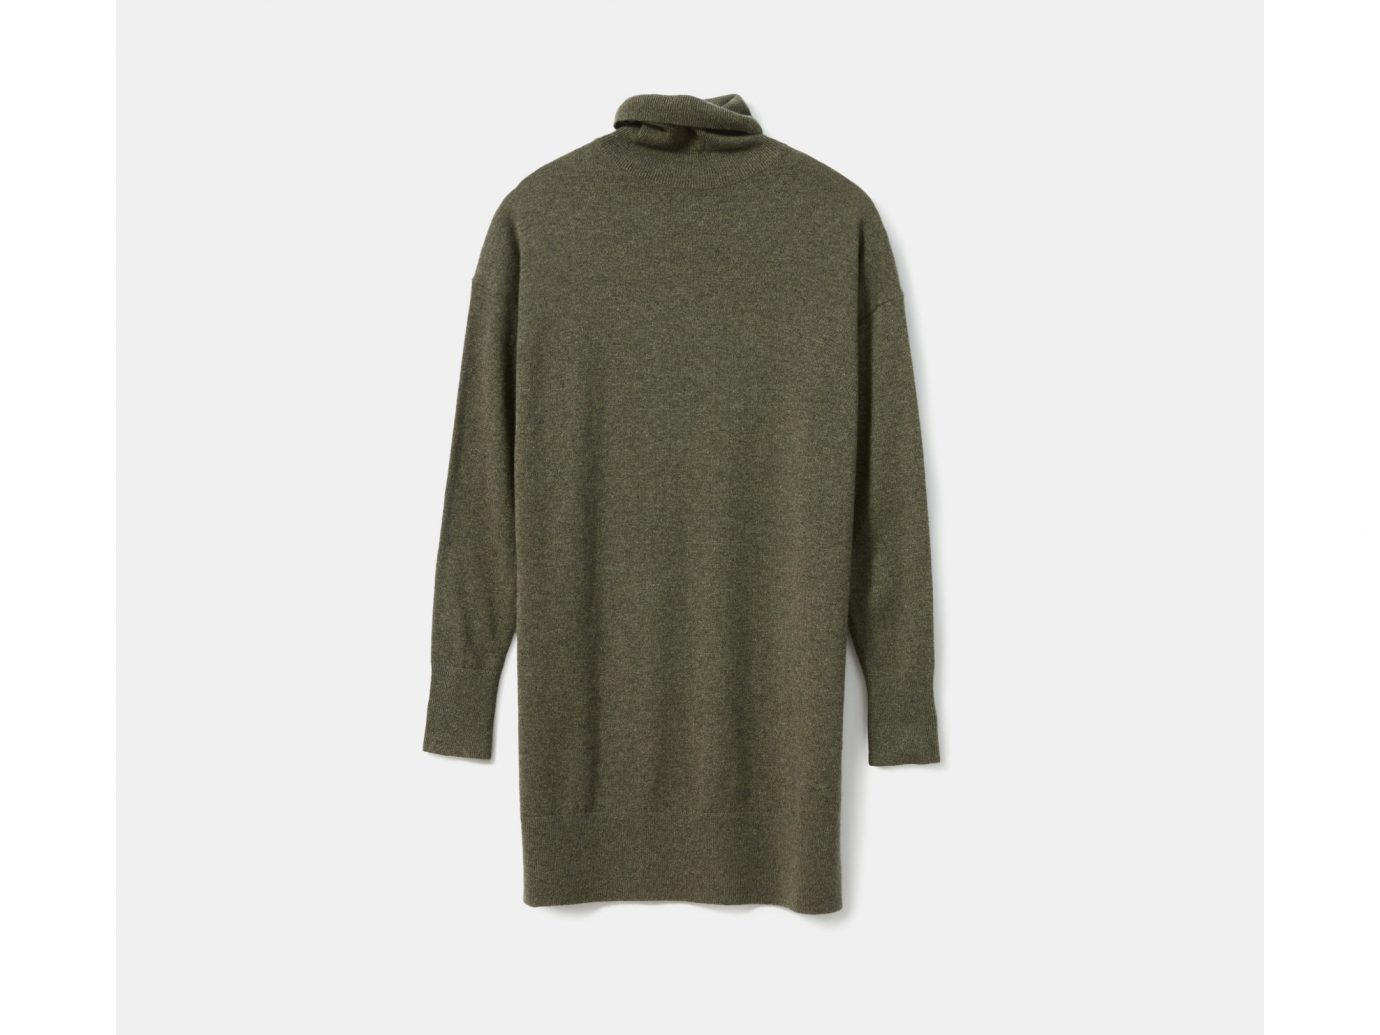 Everlane The Cashmere Turtleneck Dress